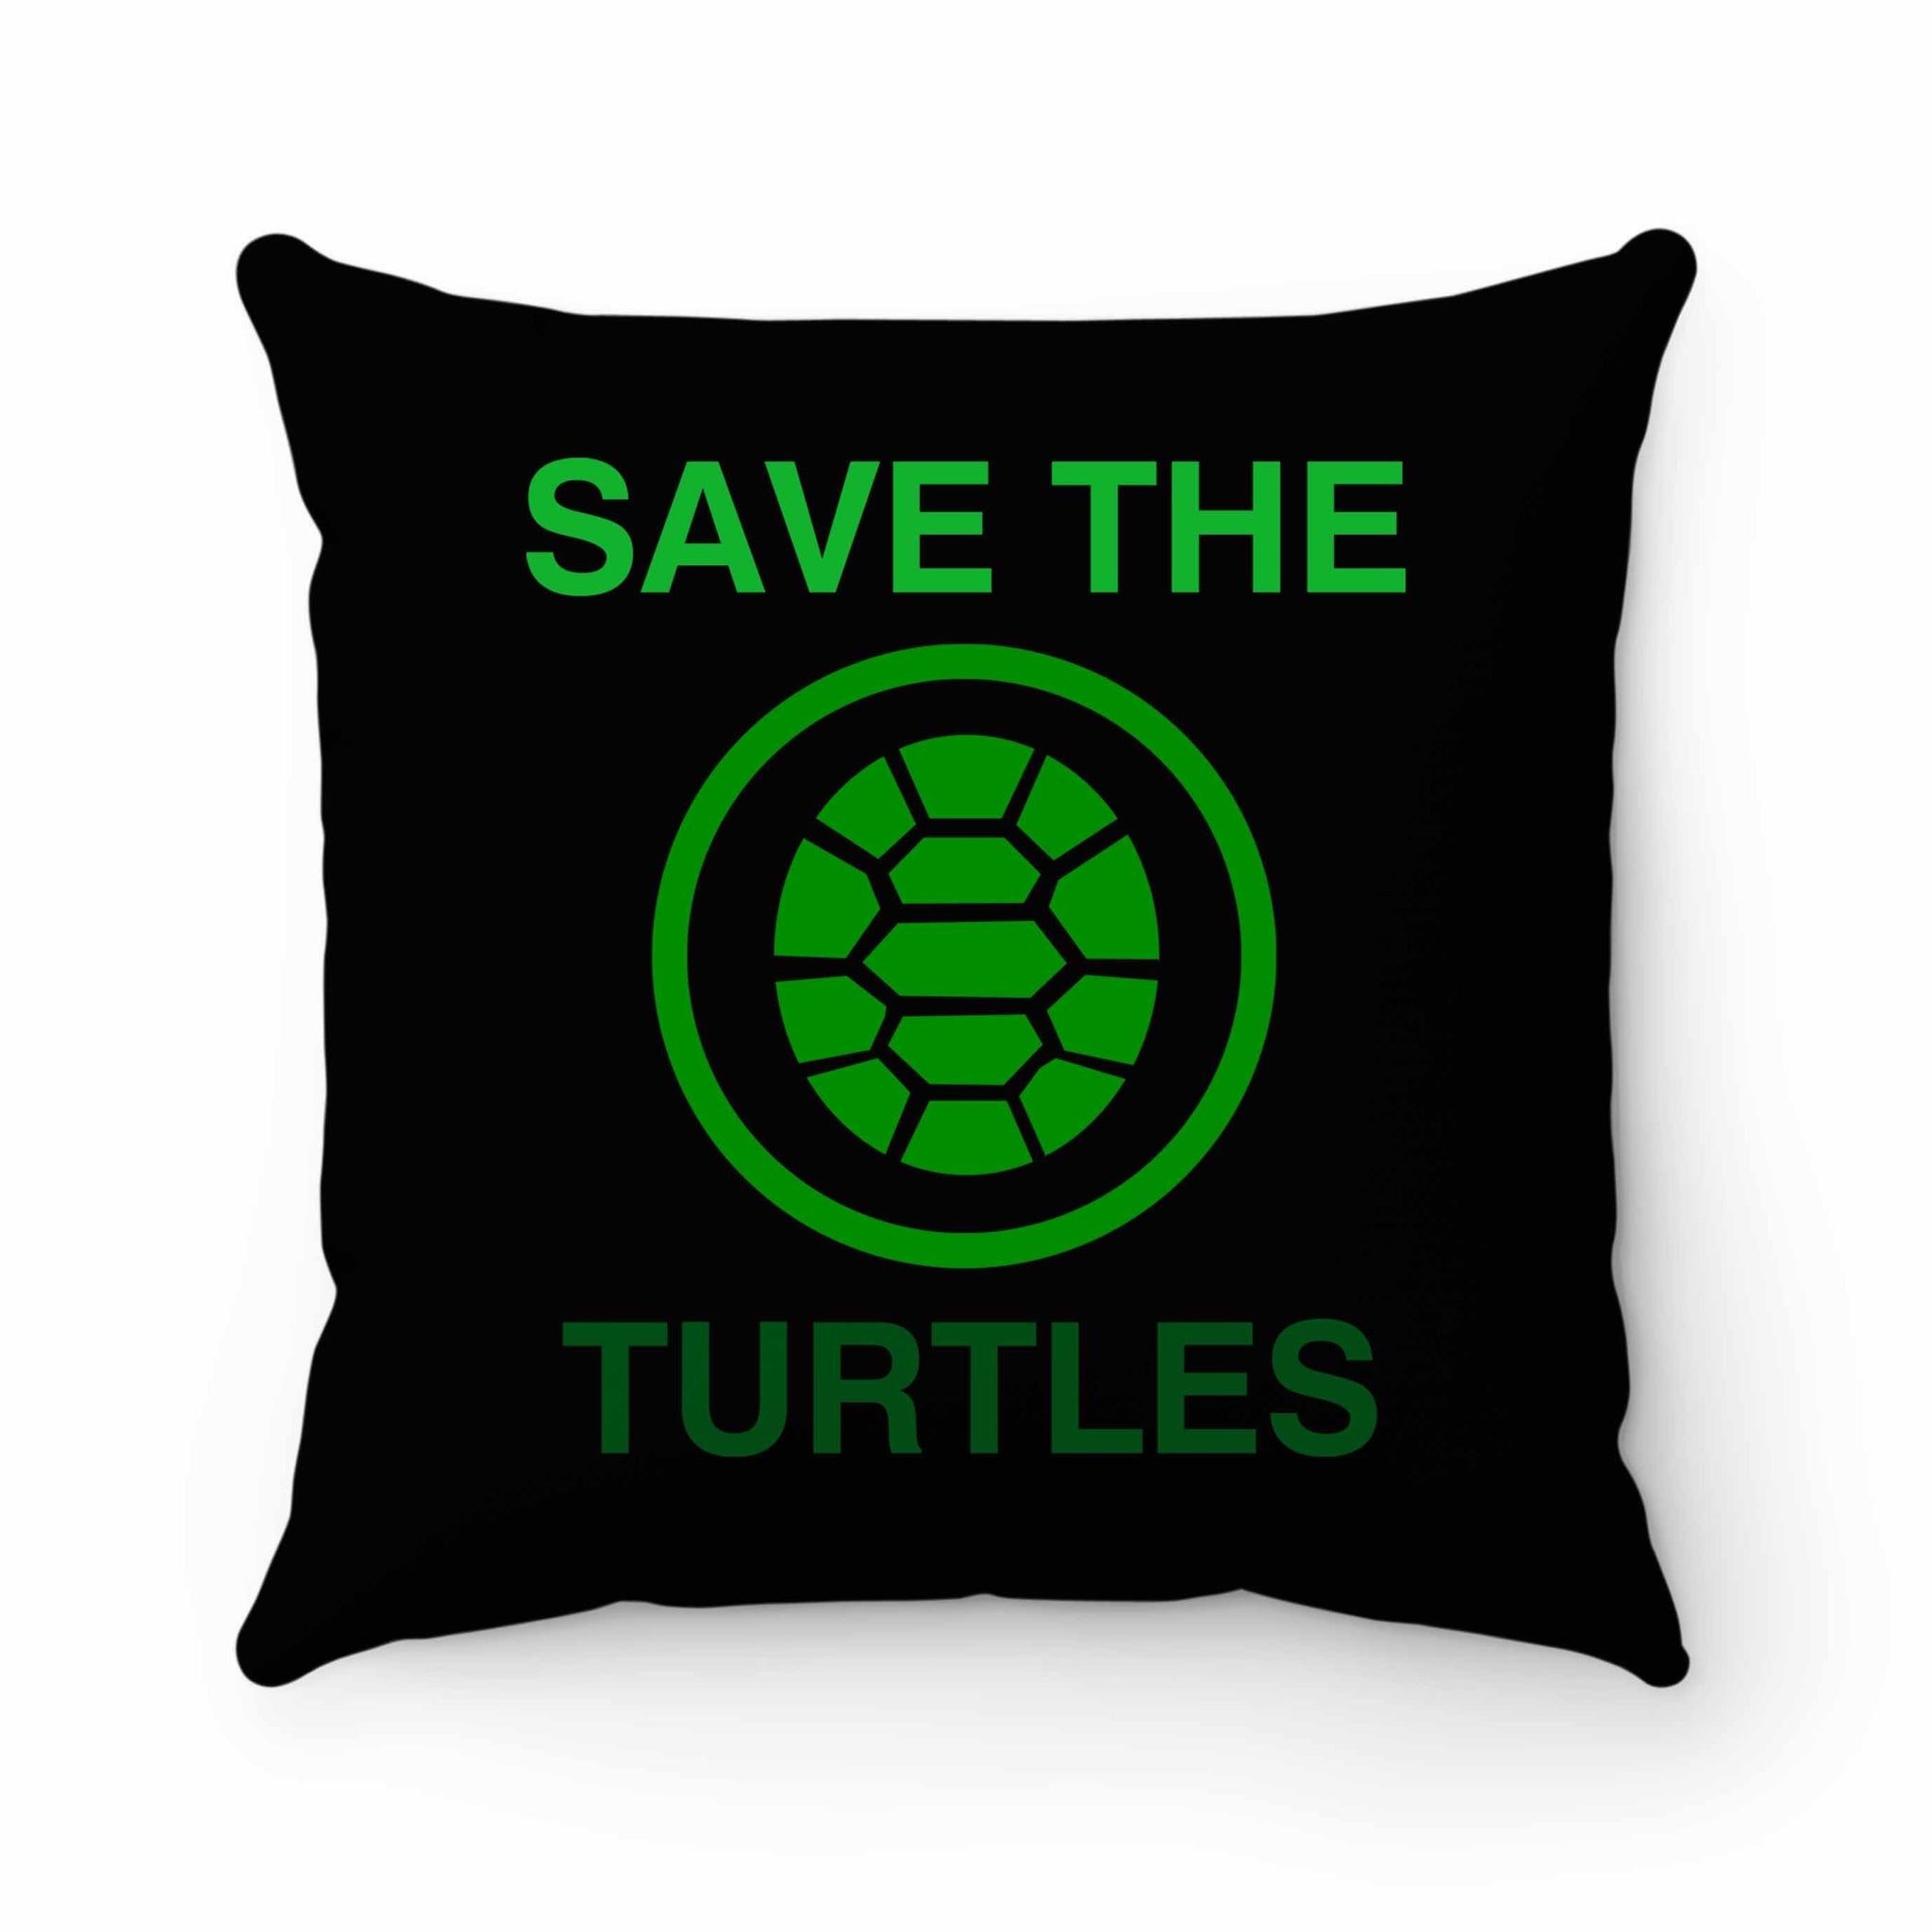 Save The Turtles Pillow Case Cover